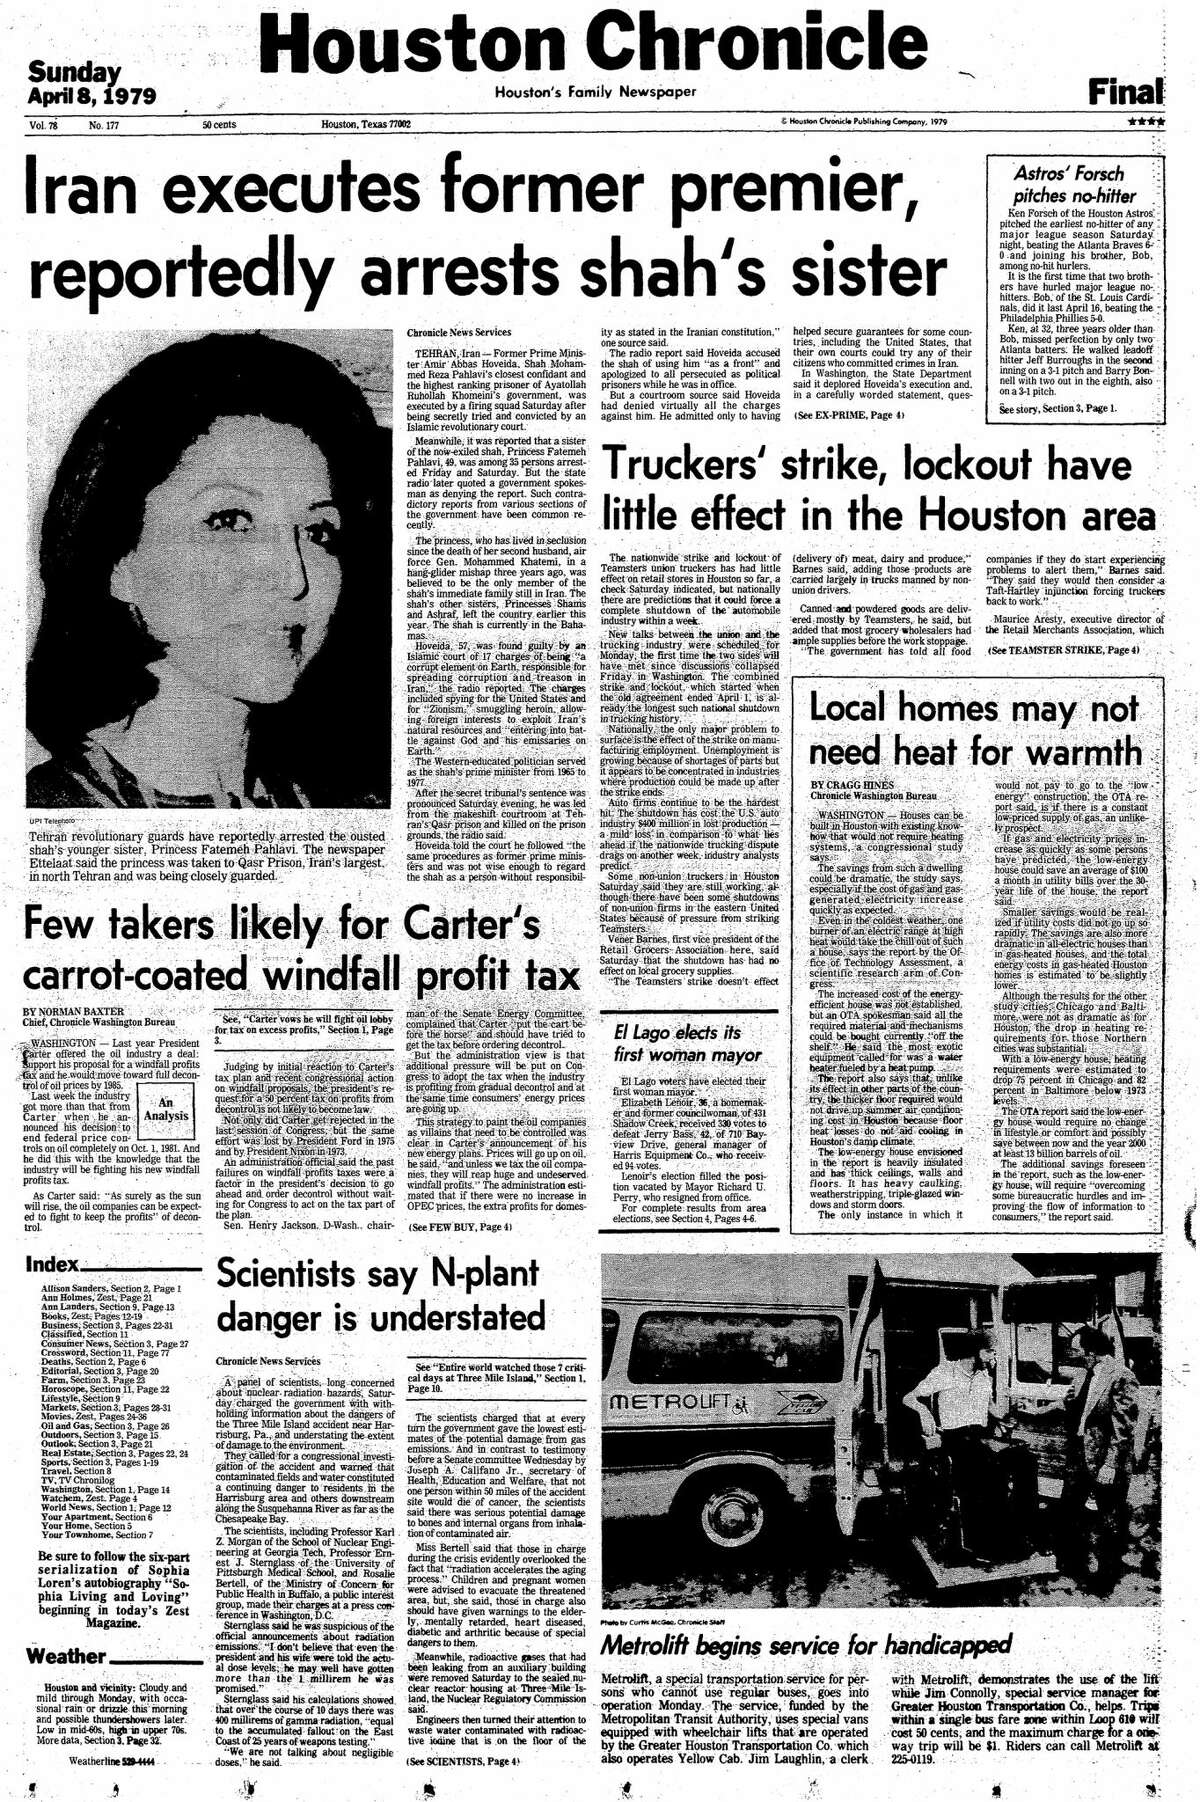 Houston Chronicle front page for April 8, 1979.